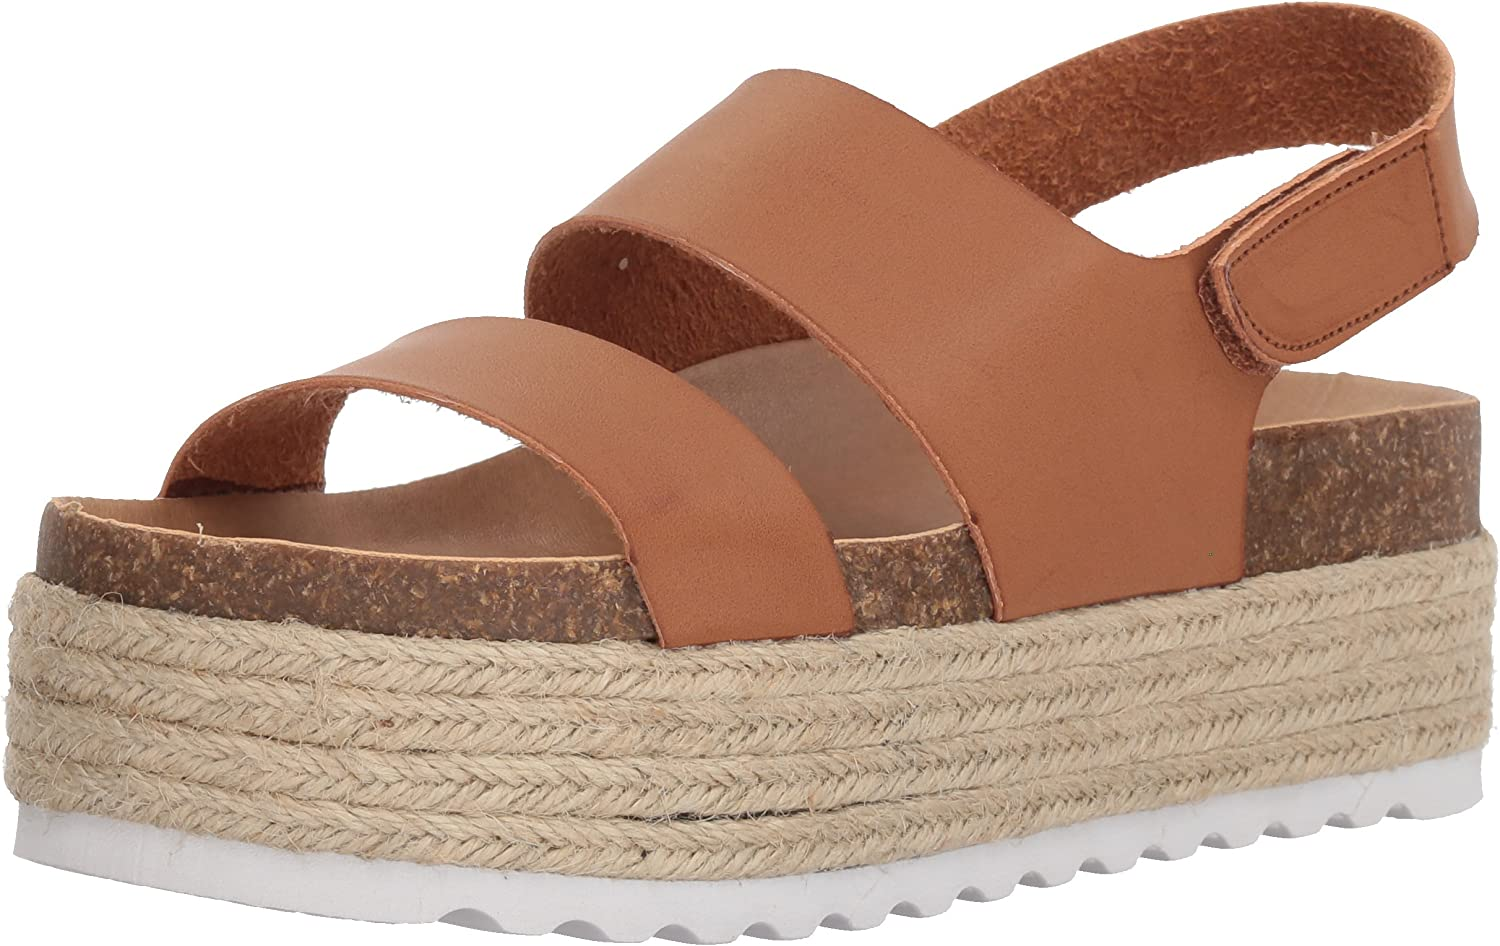 Dirty Laundry Womens Peyton Espadrille Wedge Sandal